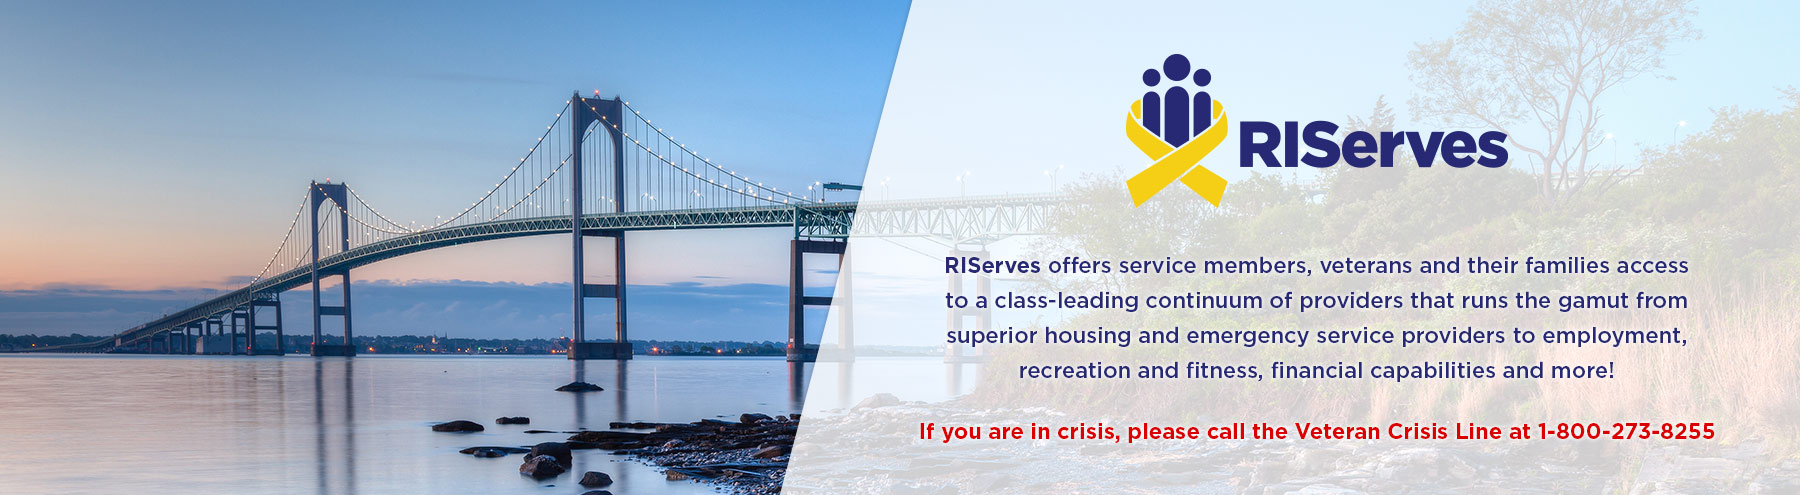 If you are in crisis, please call the Veteran Crisis Line at 1-800-272-8255.  RIServes offers service members, veterans and their families access to a class-leading continuum of providers that runs the gamut from superior housing and emergency service providers to employment, recreation and fitness, financial capabilities and more!